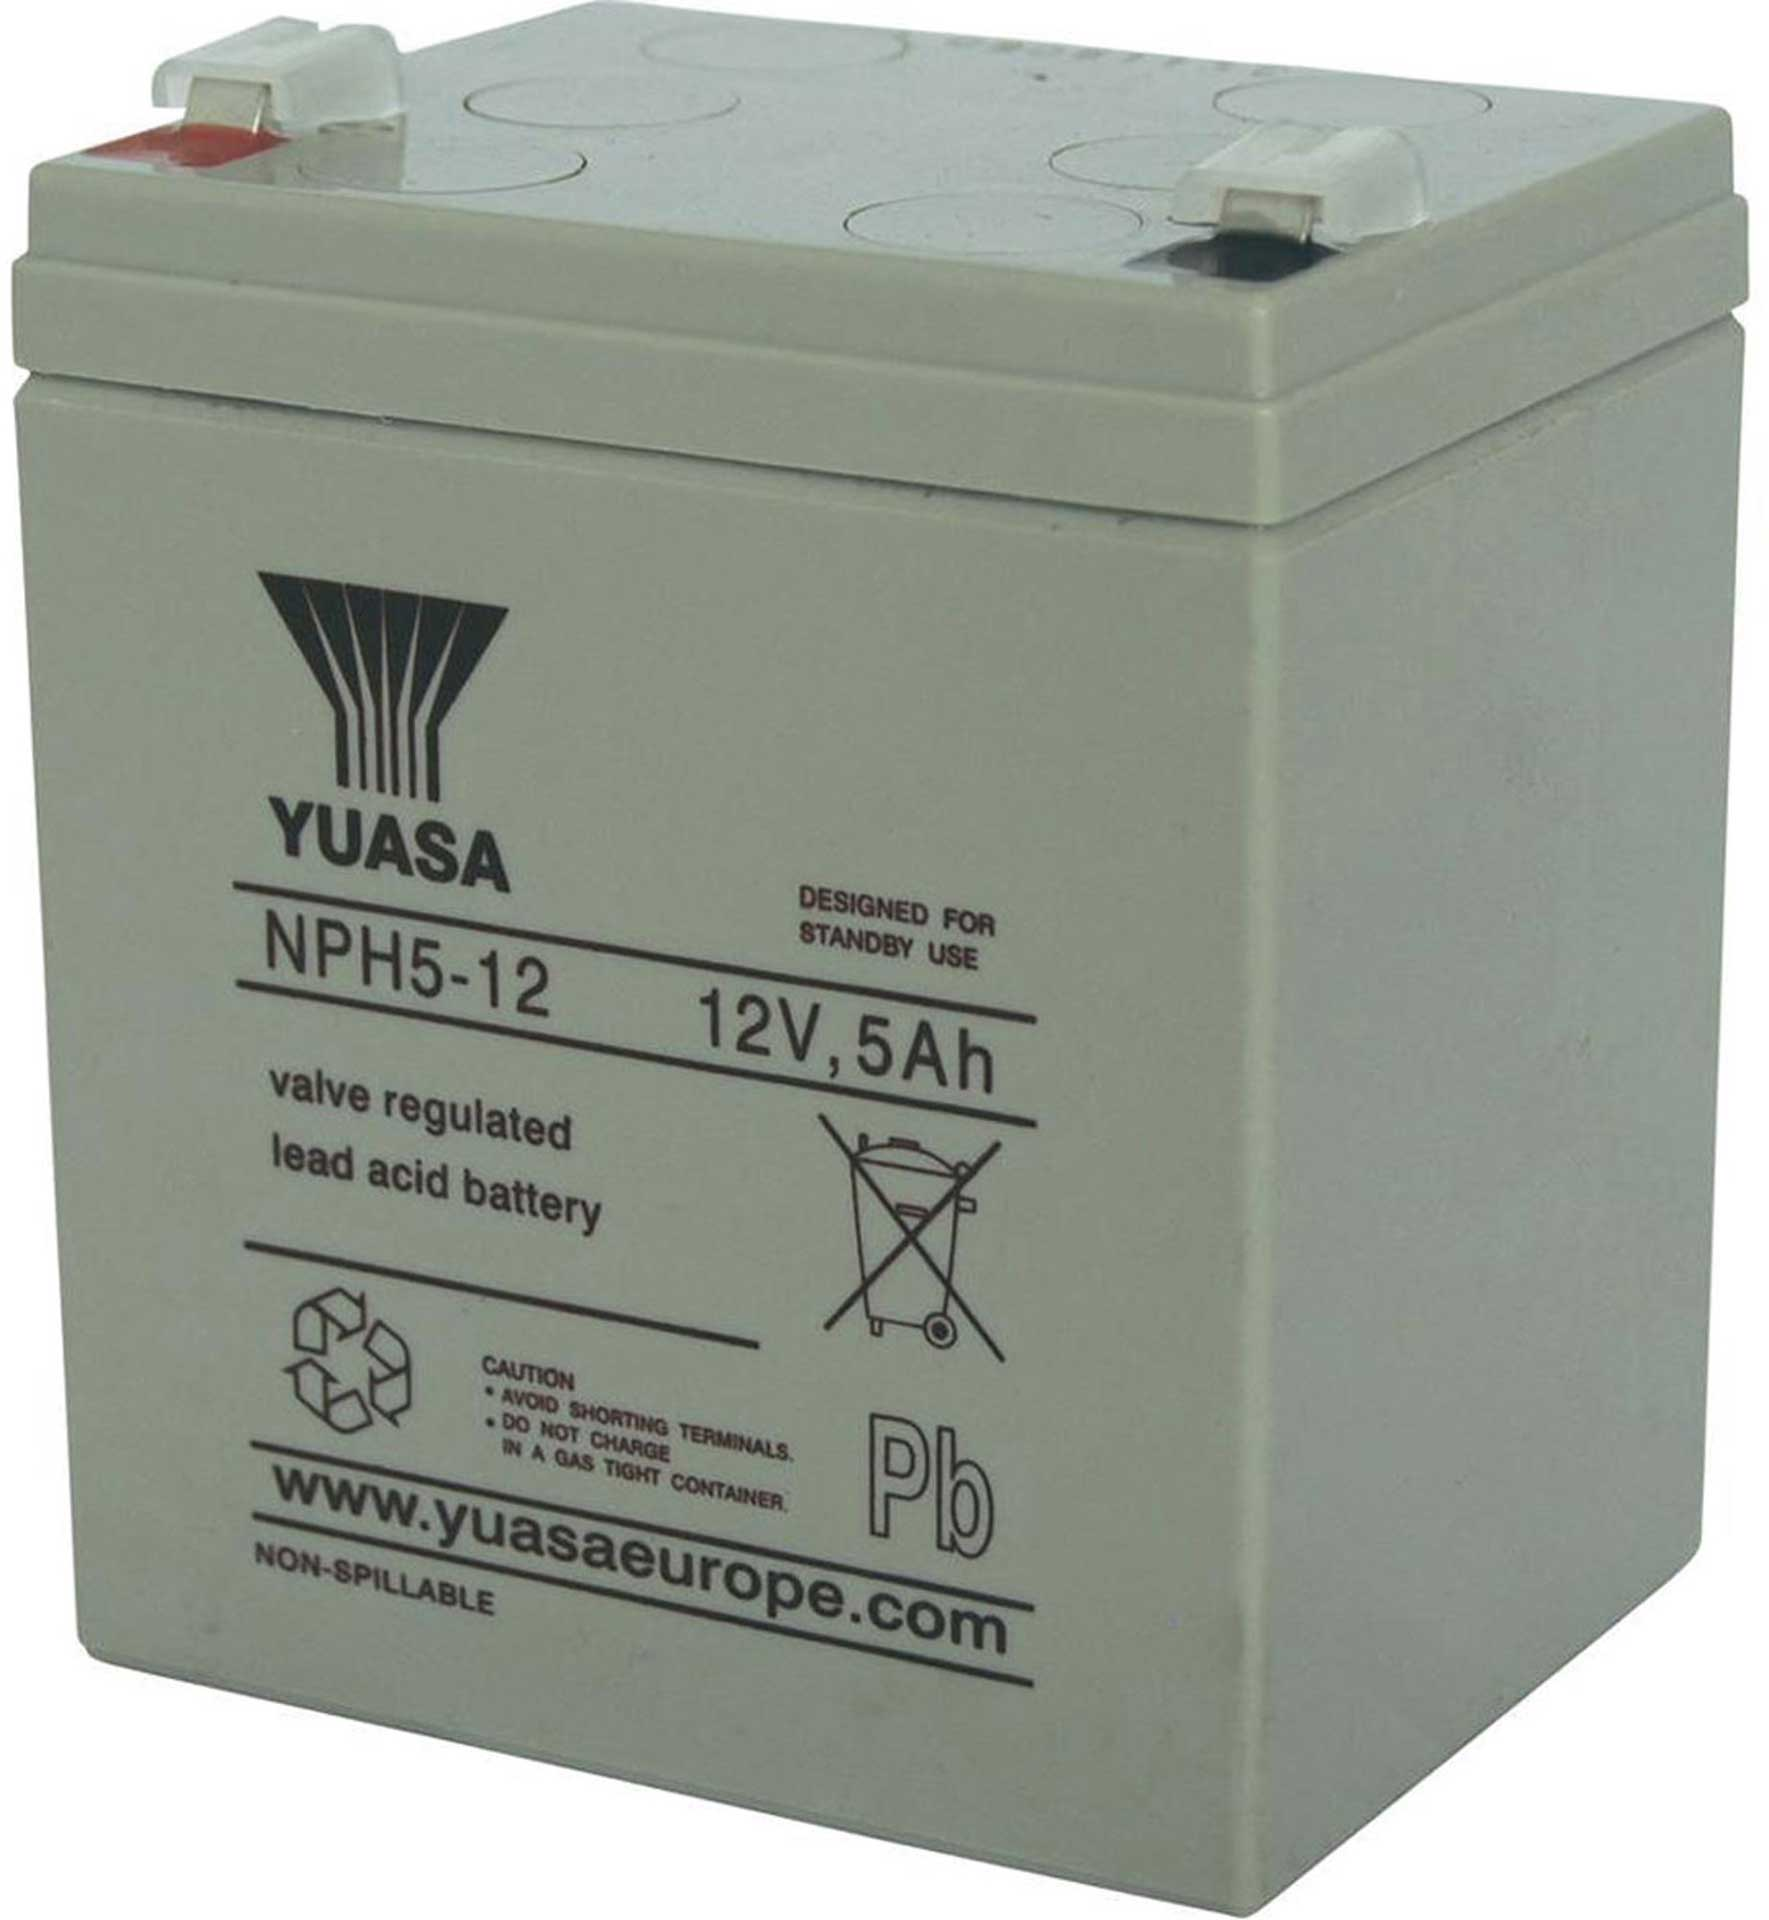 YUASA LEAD BATTERY 12V 5AH NPH5-12 HEAVY CURRENT A FASTON 6,3 H 106MM/B 90MM/T 70MM PLUMB